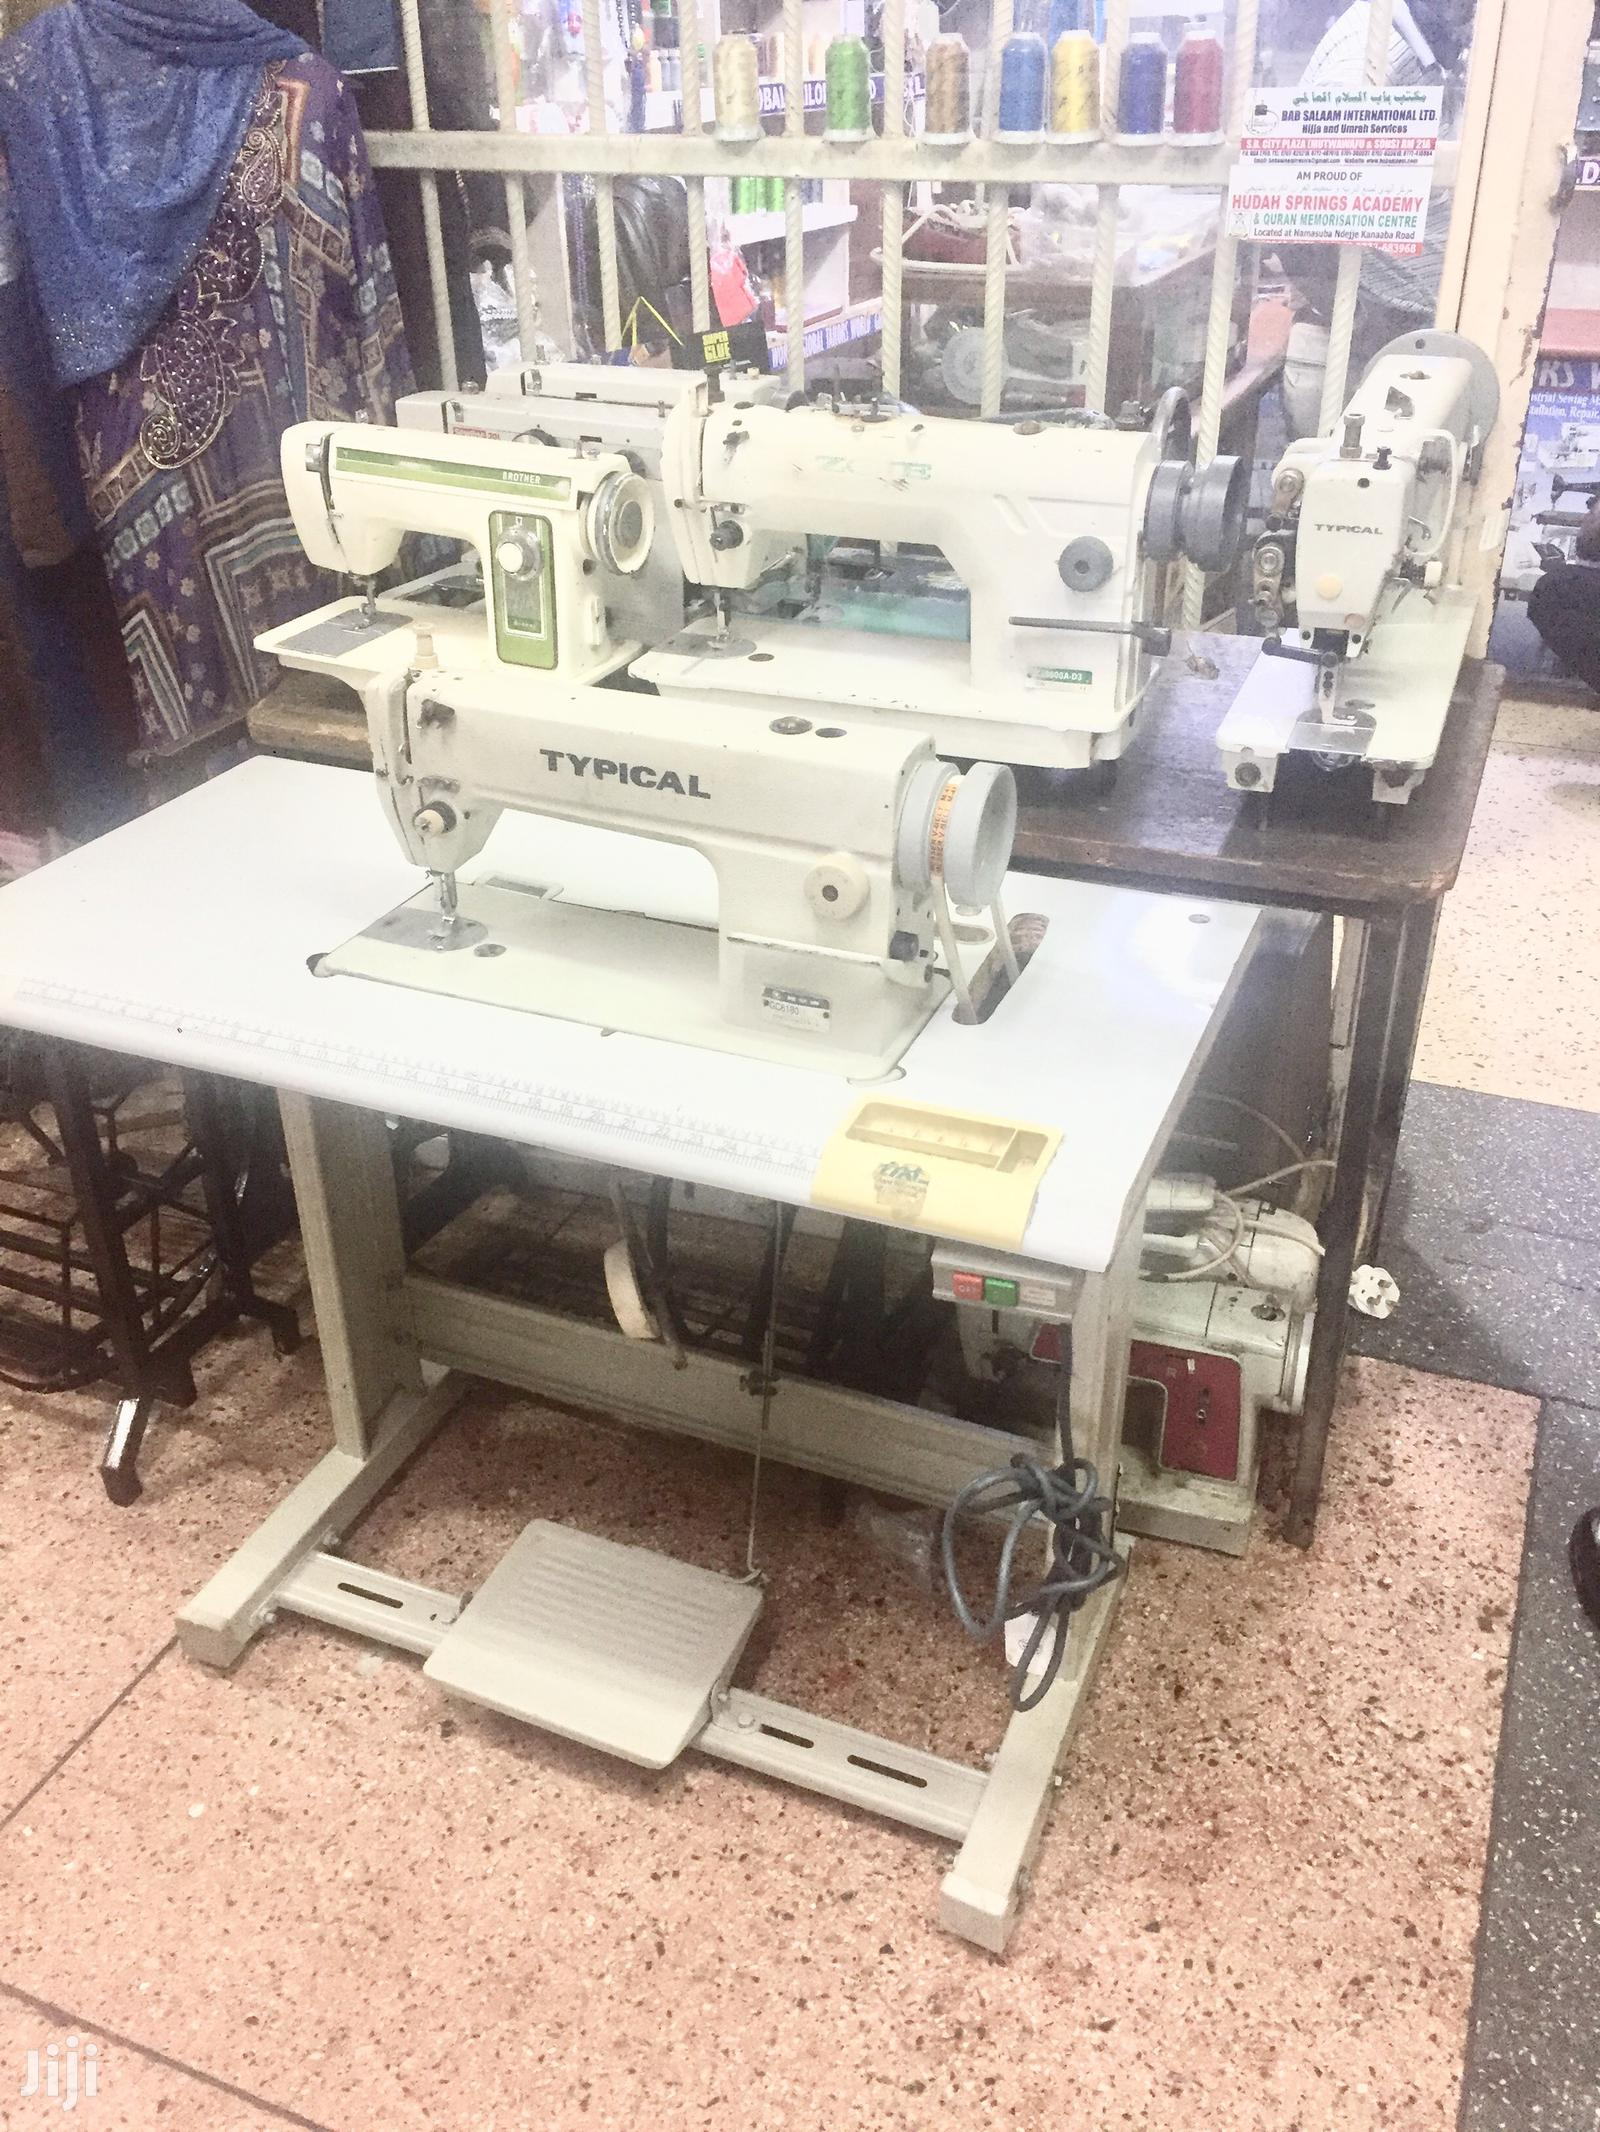 Typical Sewing Industrial Machine